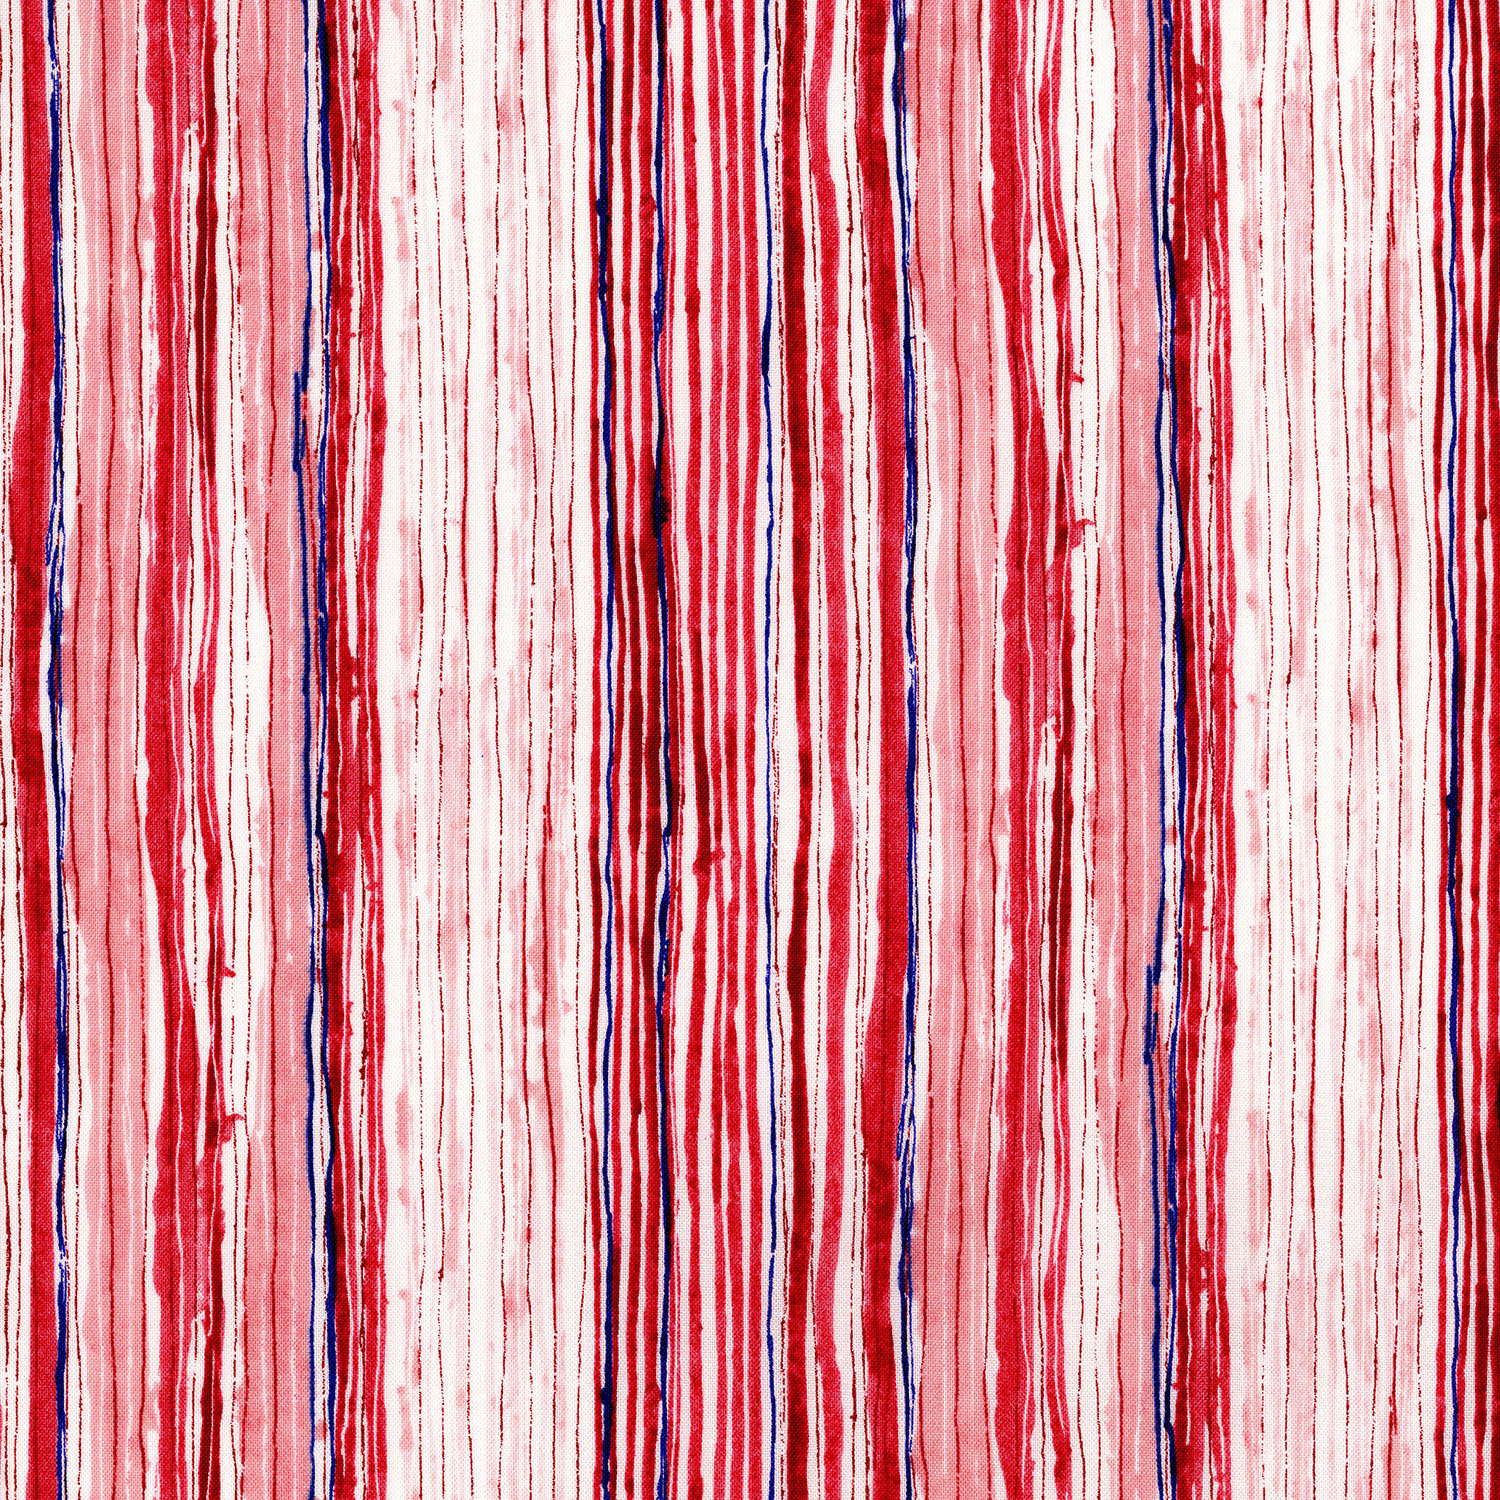 3279-002 FINE LINES-ROUGE